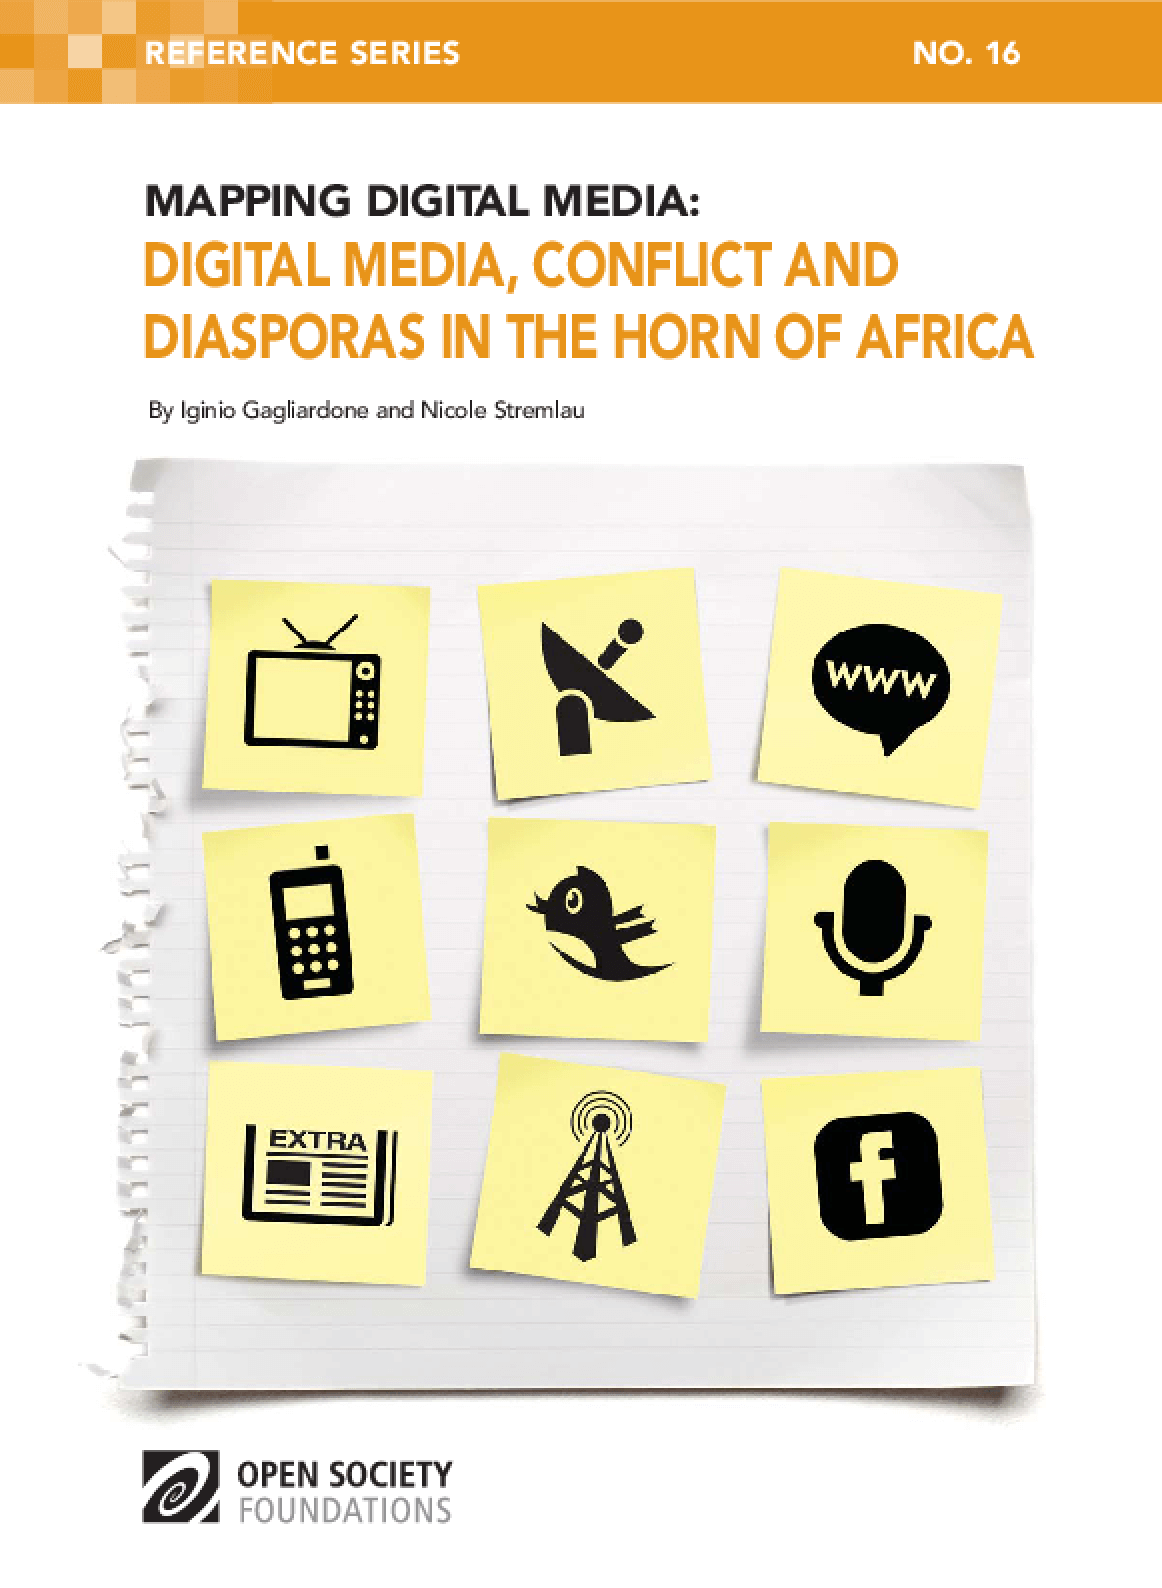 Mapping Digital Media: Digital Media, Conflict and Diasporas in the Horn of Africa